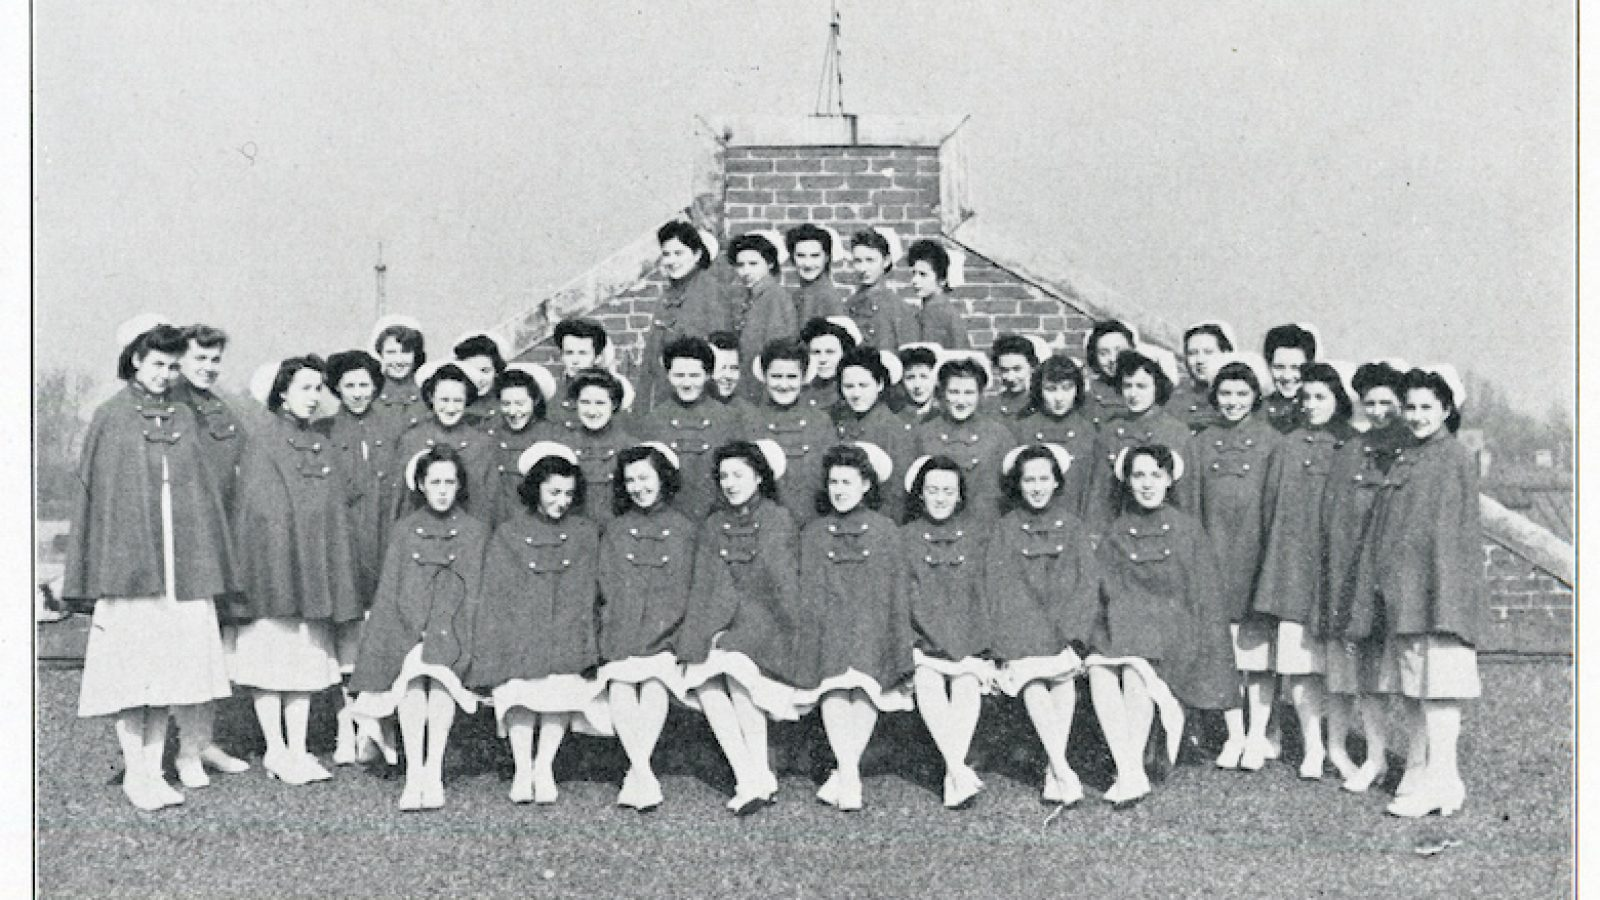 A historic photograph of the Georgetown nursing students in the Cadet Nurse Corps posing together outdoors in nursing uniforms